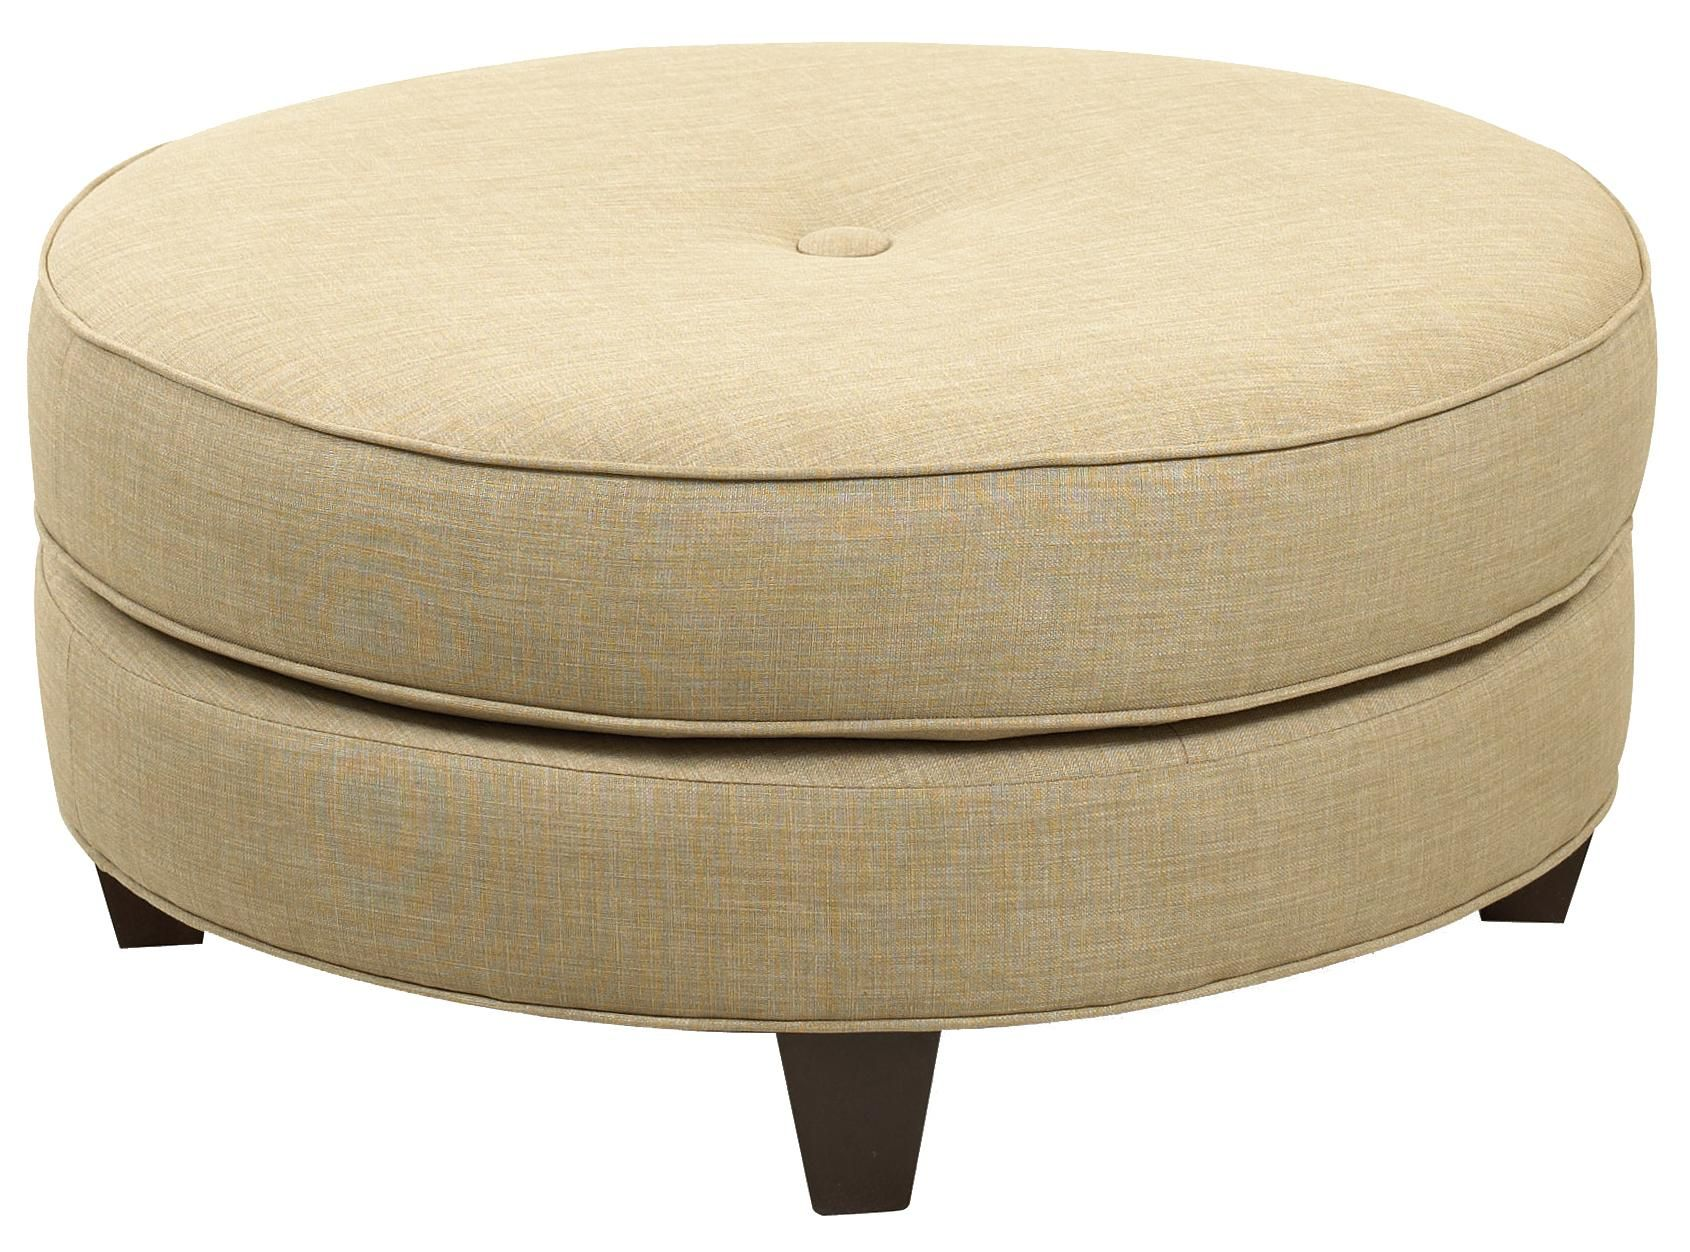 Ottoman Design Option 6 Single Button Tufted With Welting Details